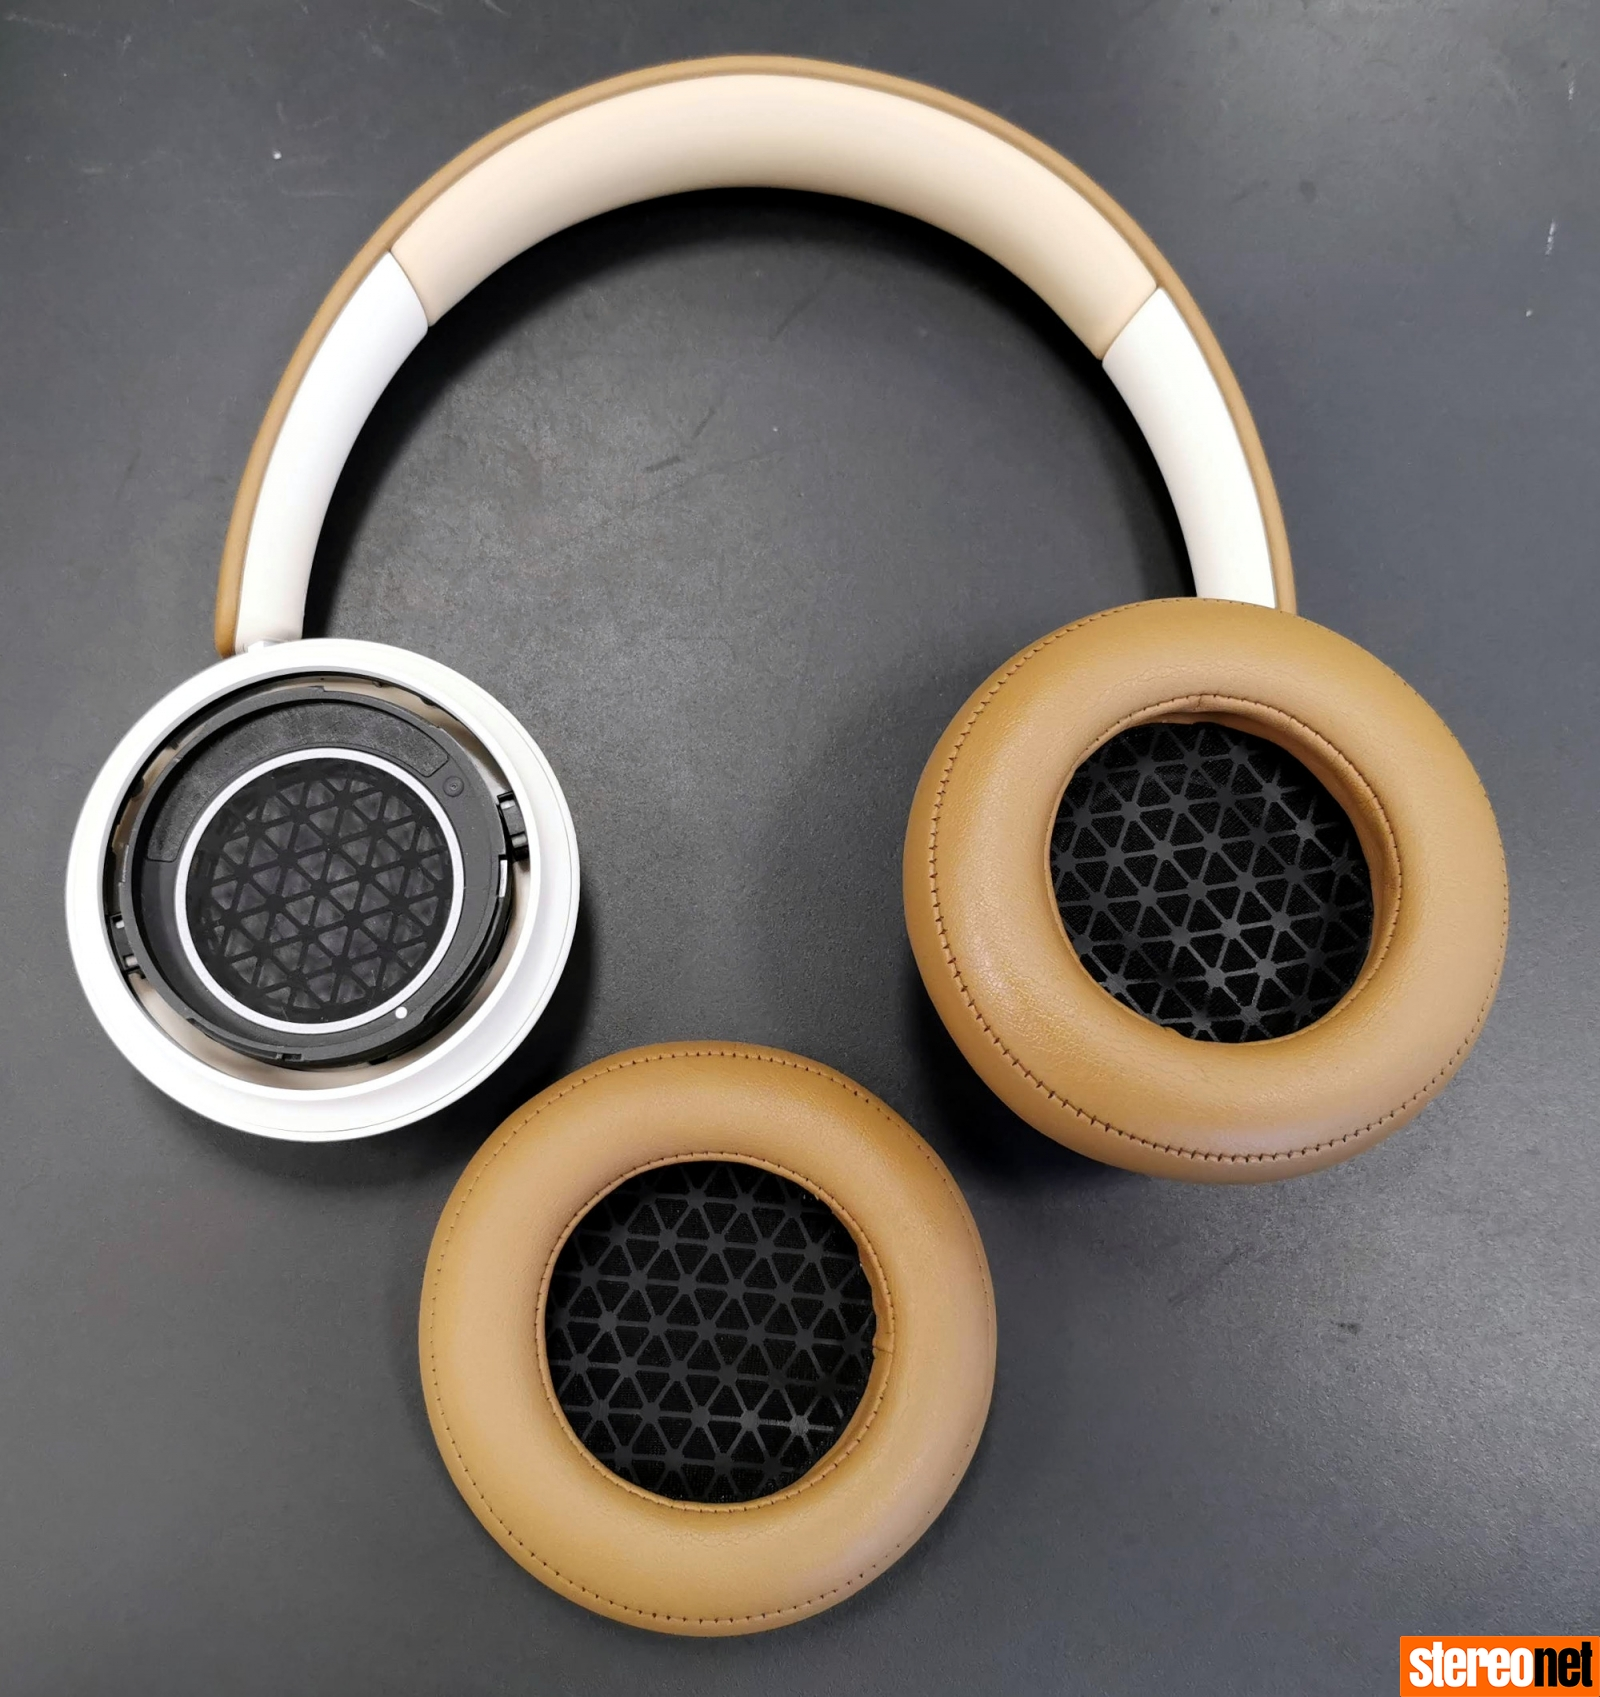 DALI iO-4 Headphones